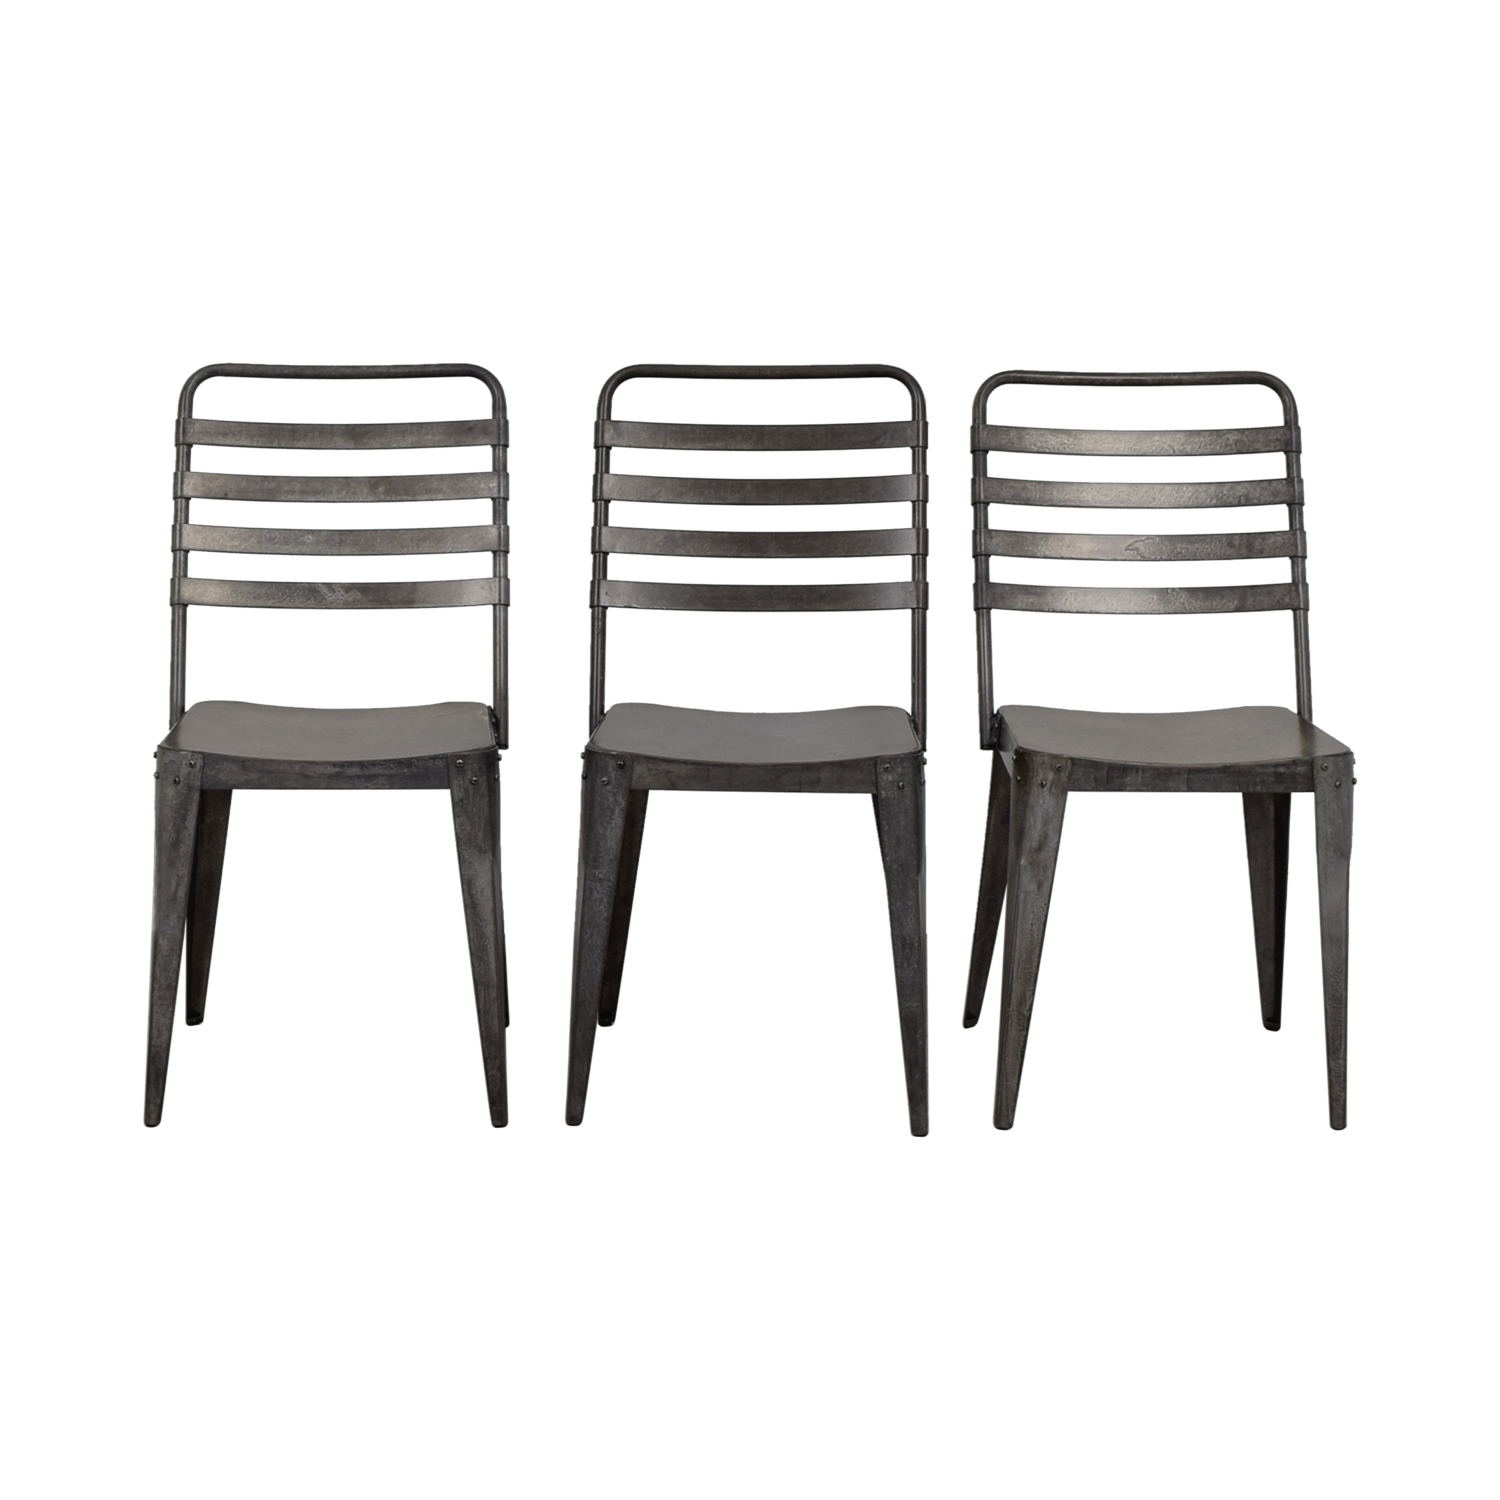 CB2 CB2 Metropolitan Distressed Metal Chairs coupon